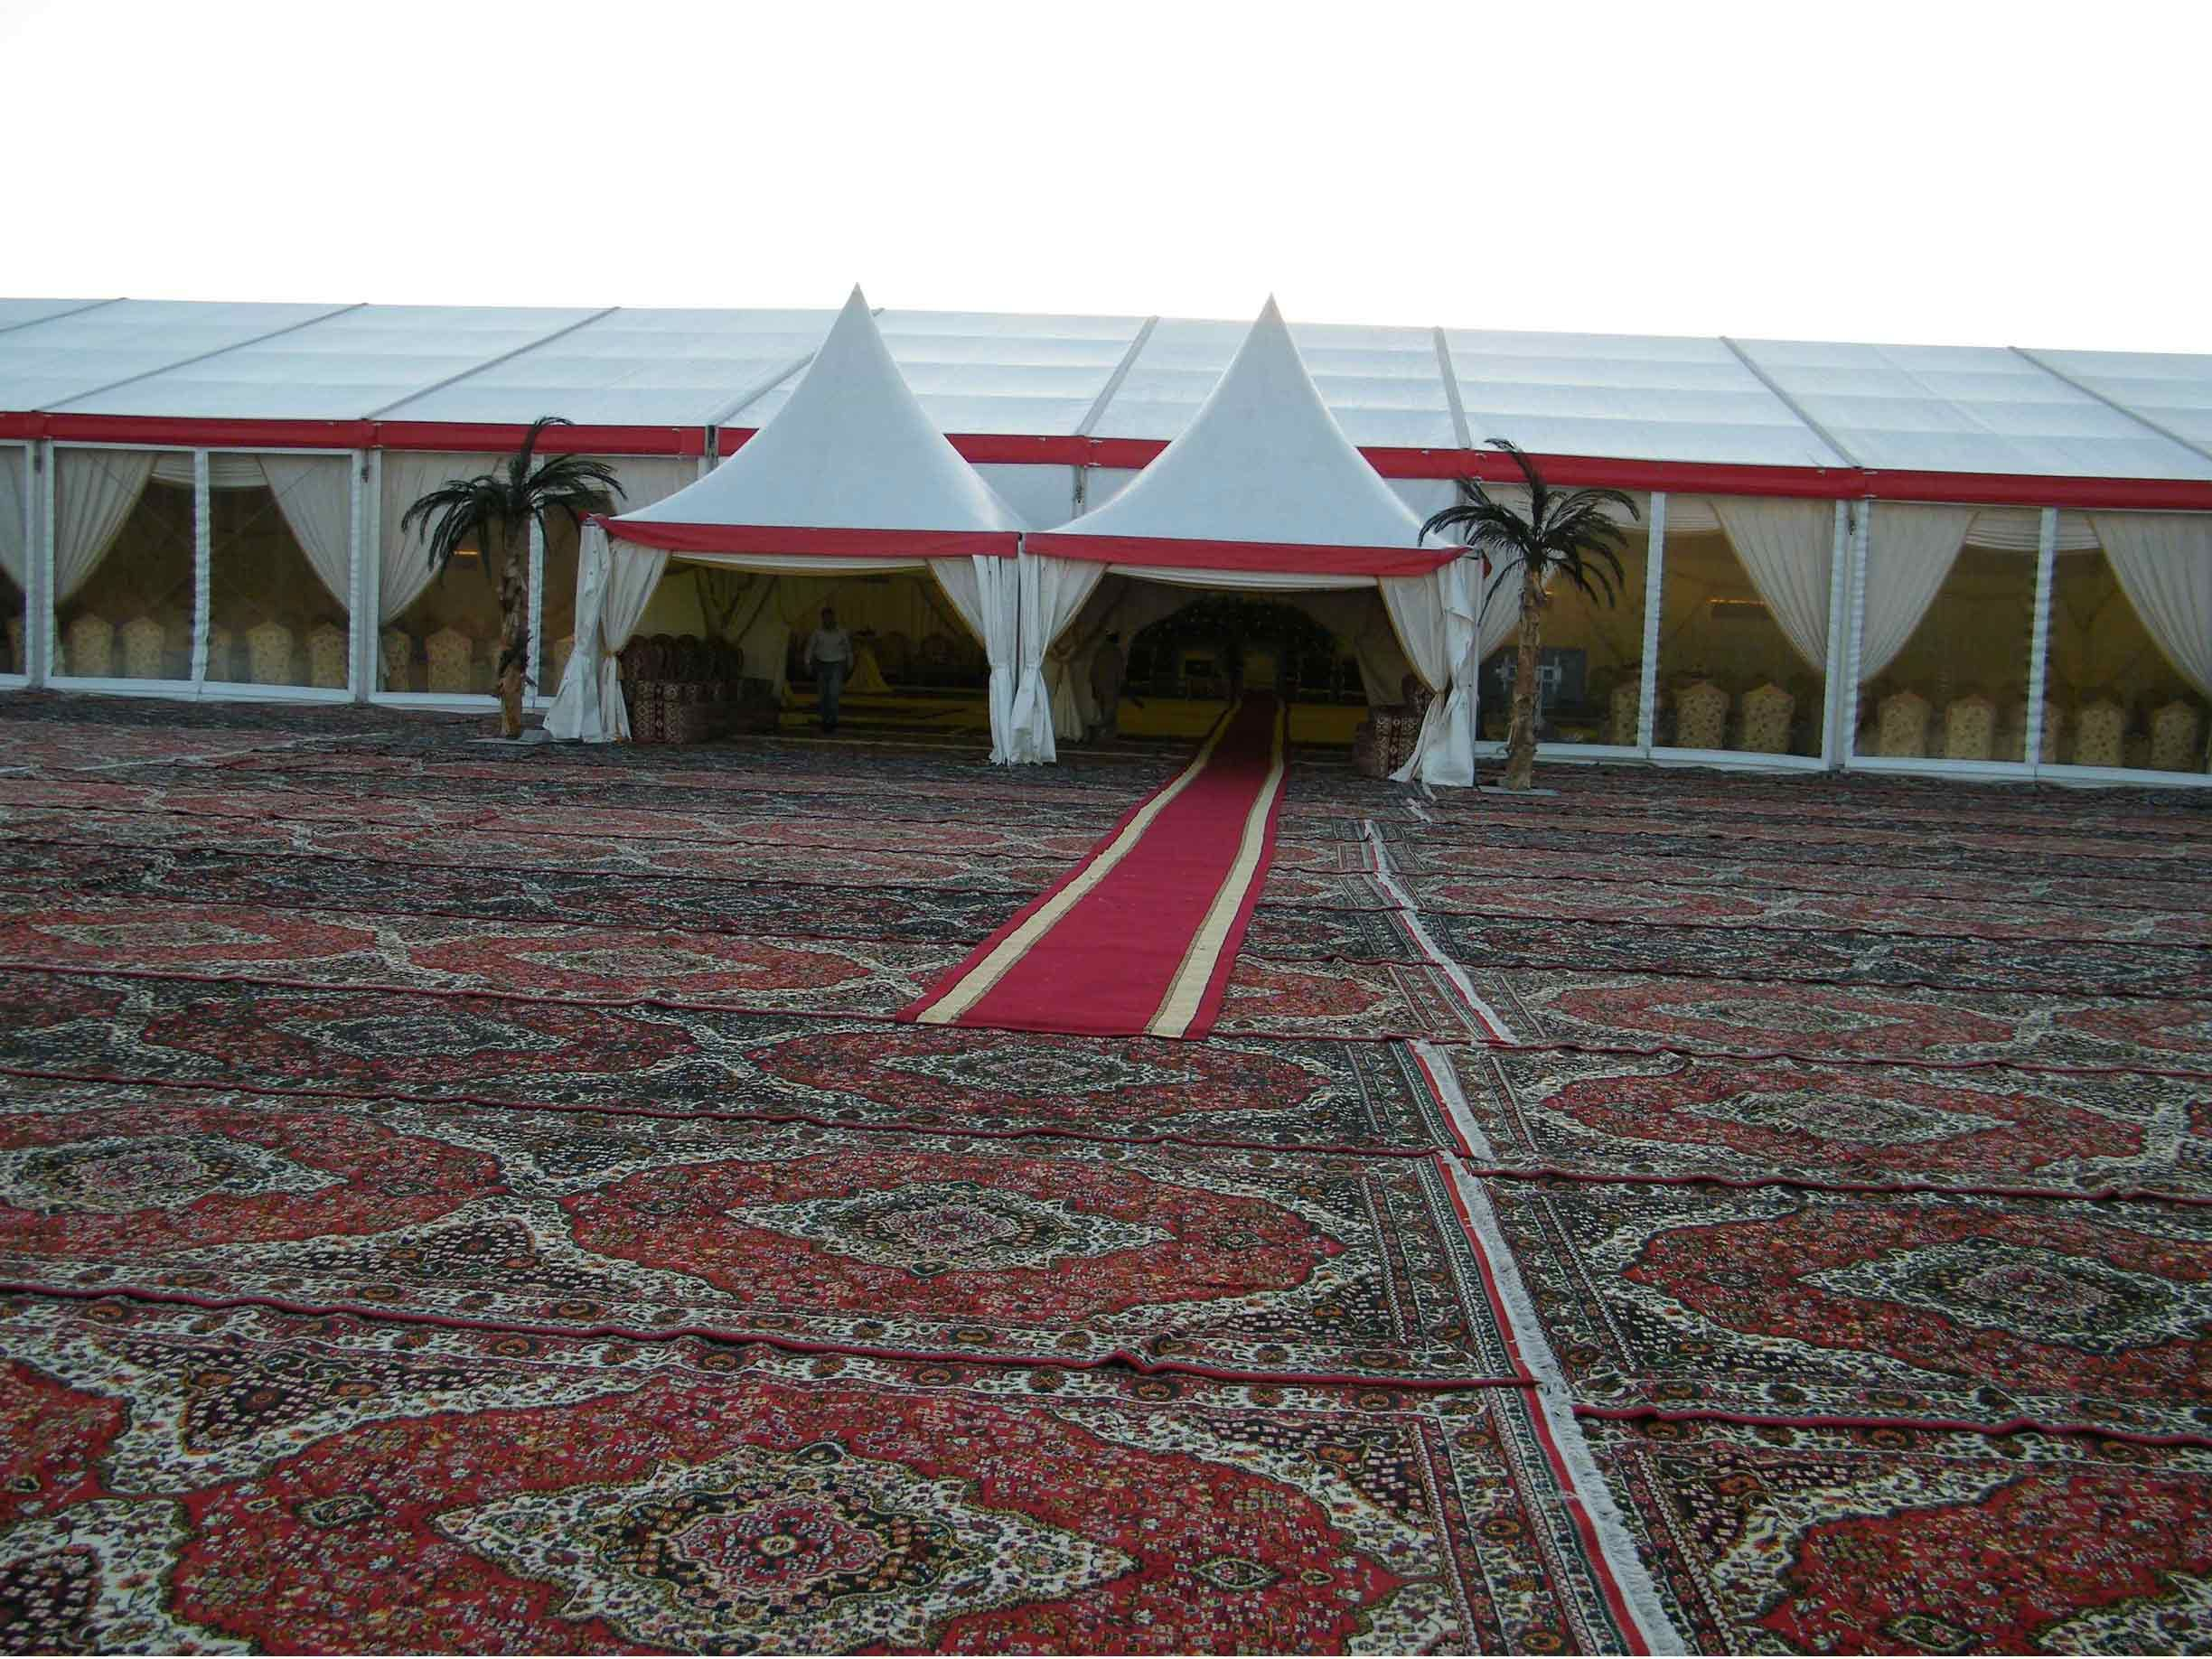 Small Tent | Canopy Tent | Worship Tent | High Peak Tent  sc 1 st  Pinterest & Small Tent | Canopy Tent | Worship Tent | High Peak Tent | Pagoda ...